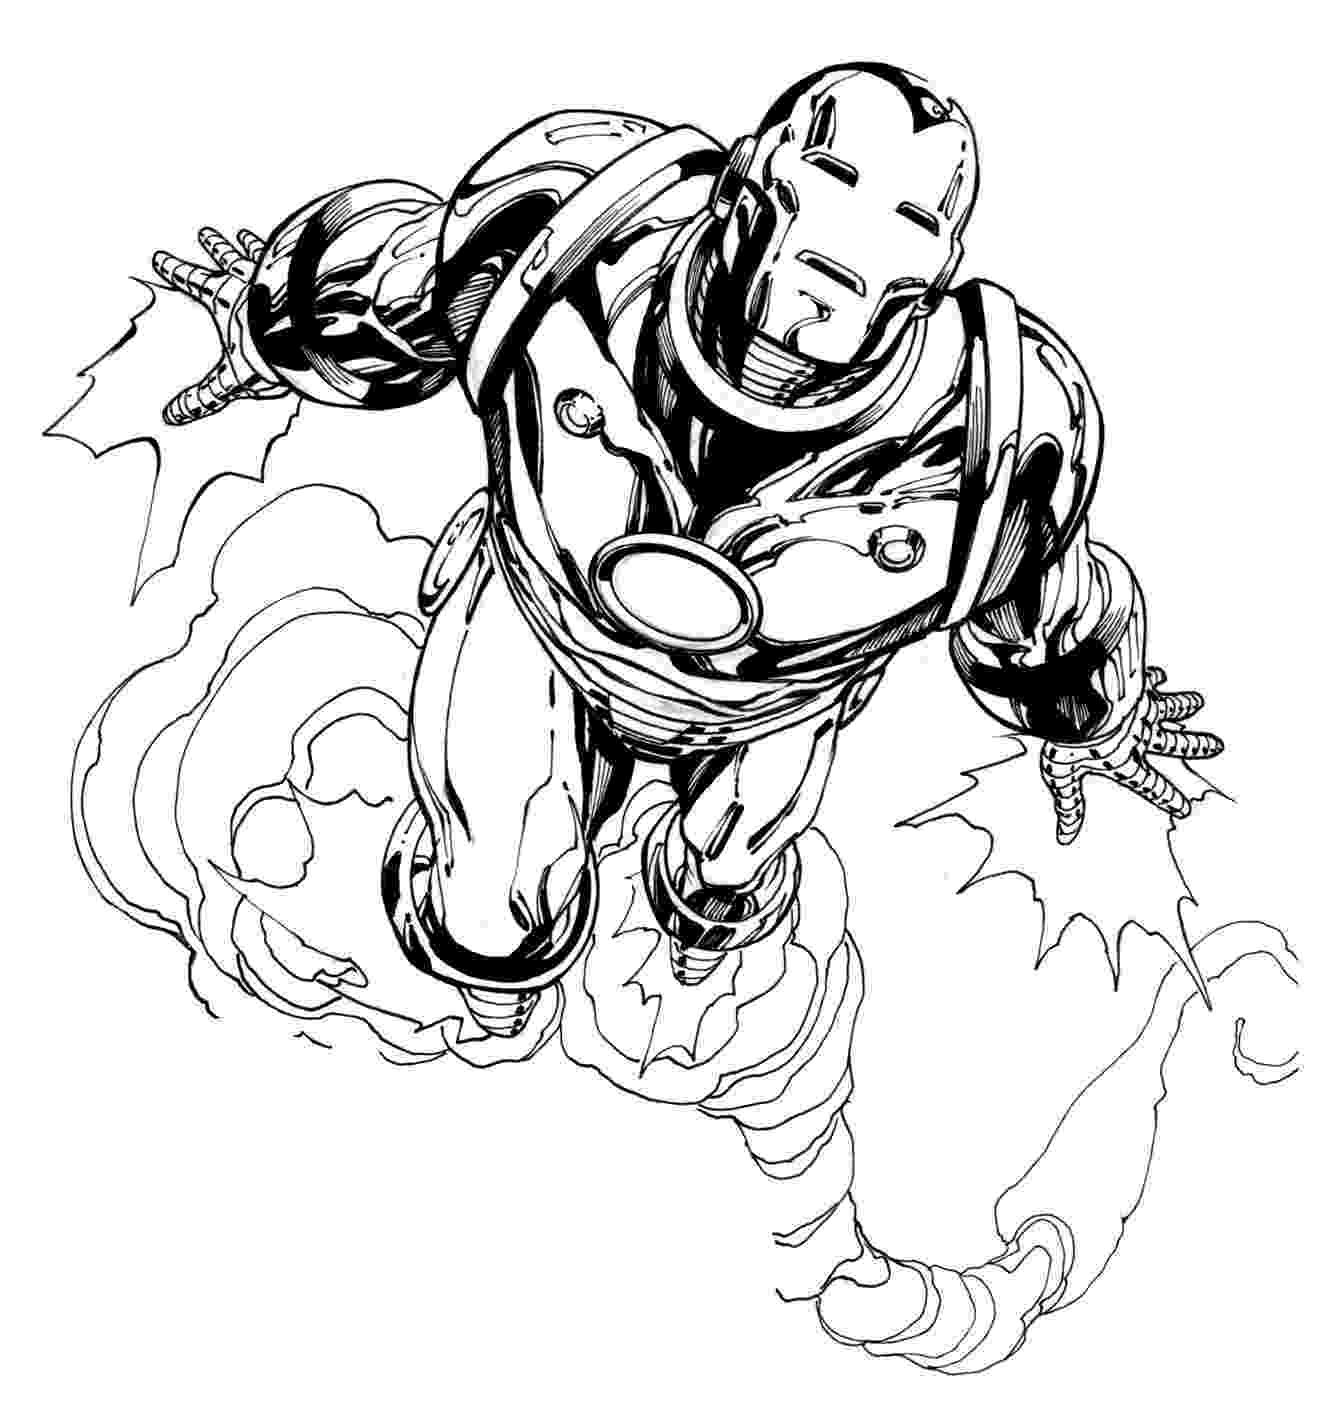 iron man color page iron man 2 coloring pages collections color page man iron